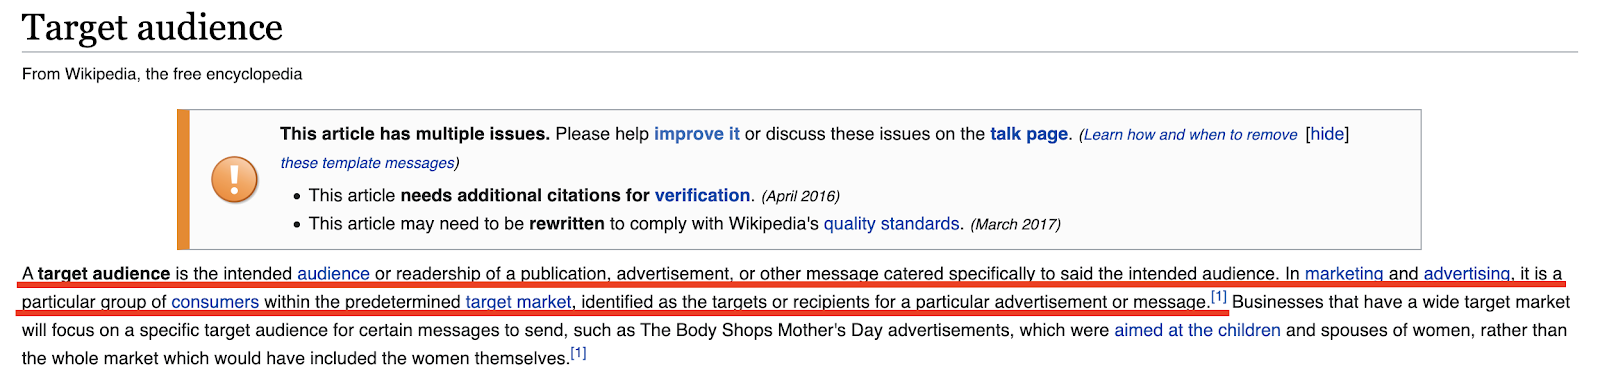 Wikipedia definition of a target audience